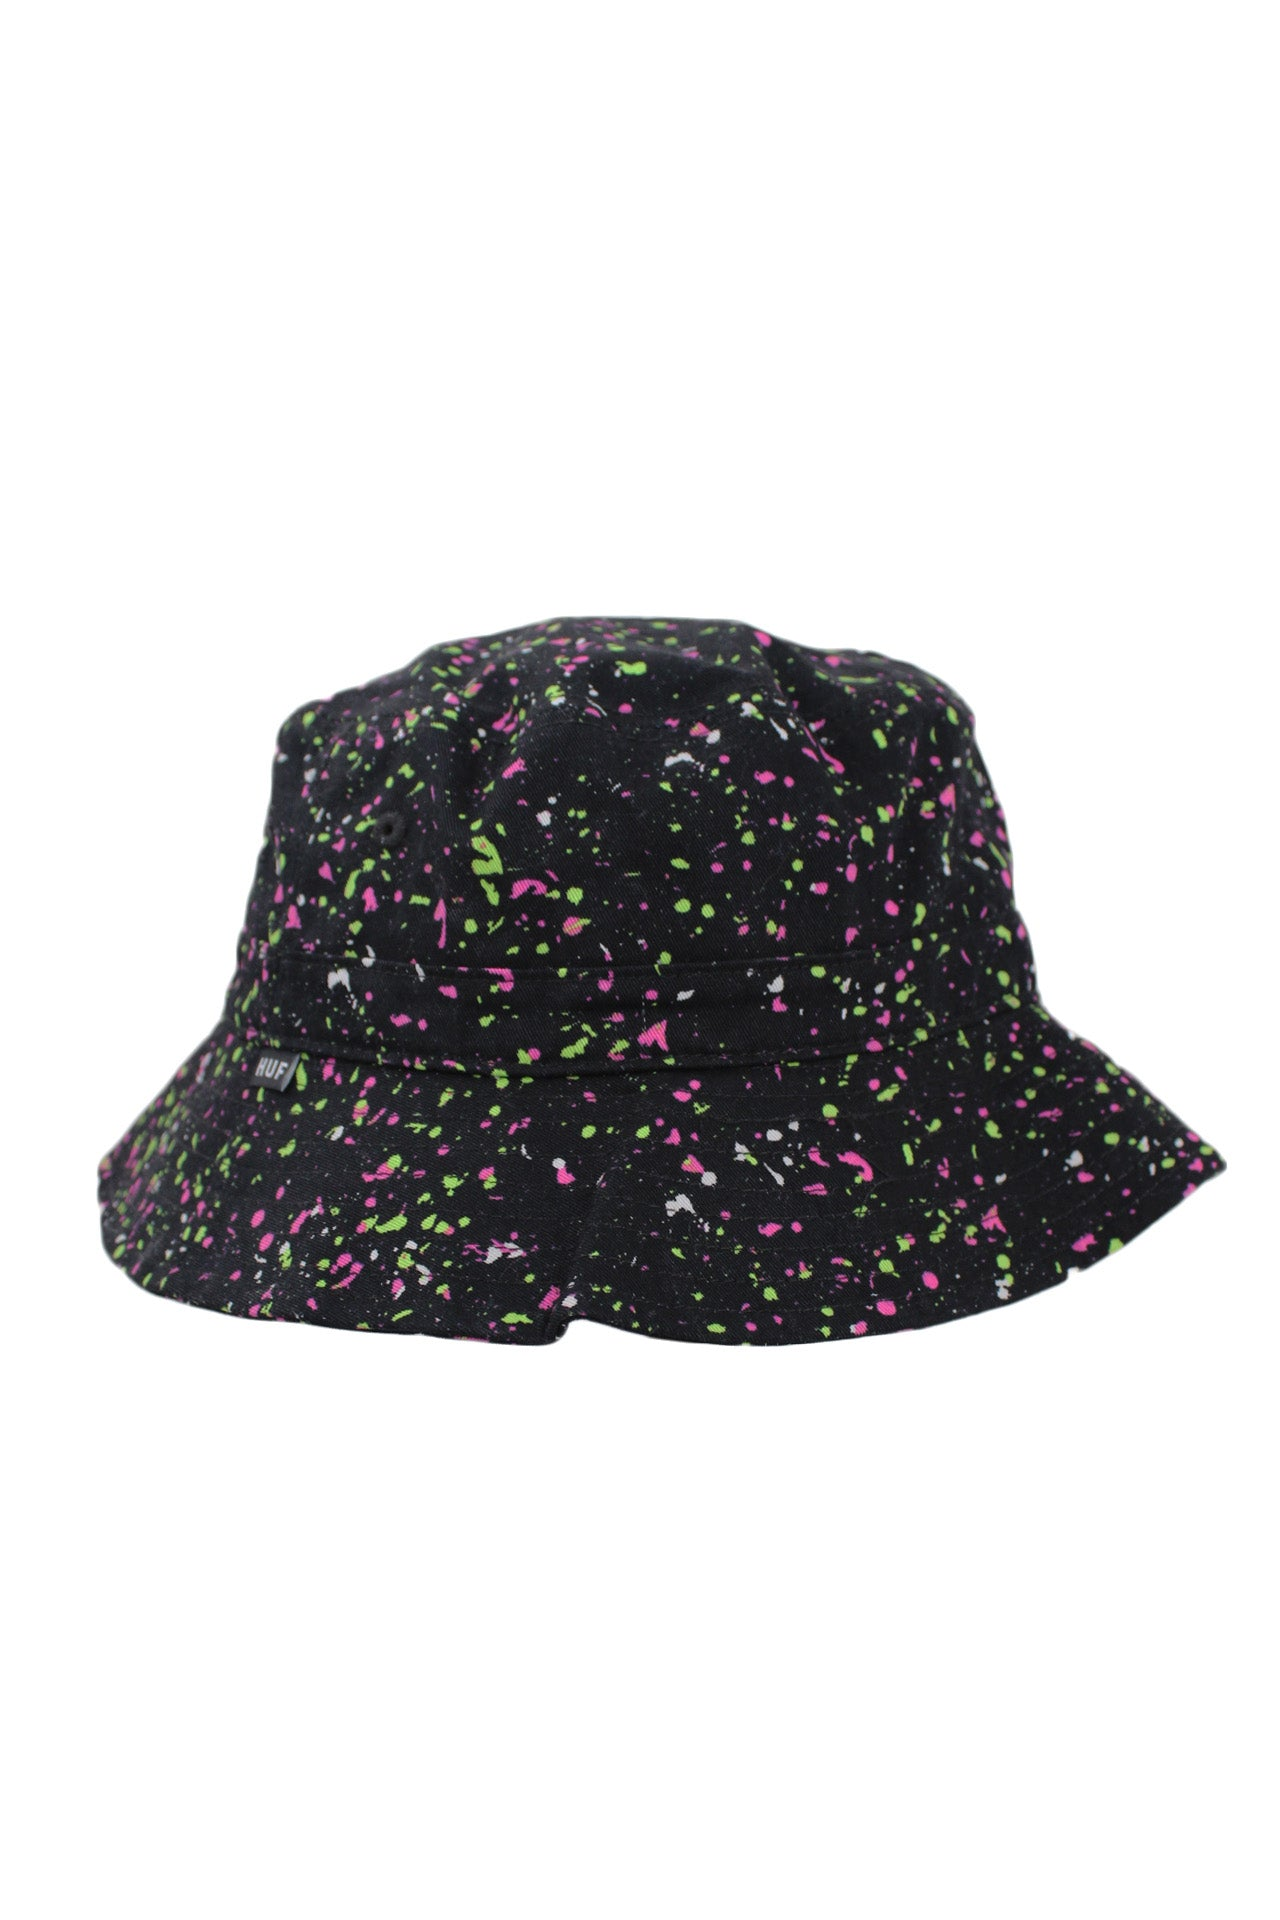 "huf x downhill black/green/pink/white speckled cotton bucket hat. features 'downhill' logo embroidered at front left of crown and a 'huf' logo tab at right side. brim measures ~ 2.25""."